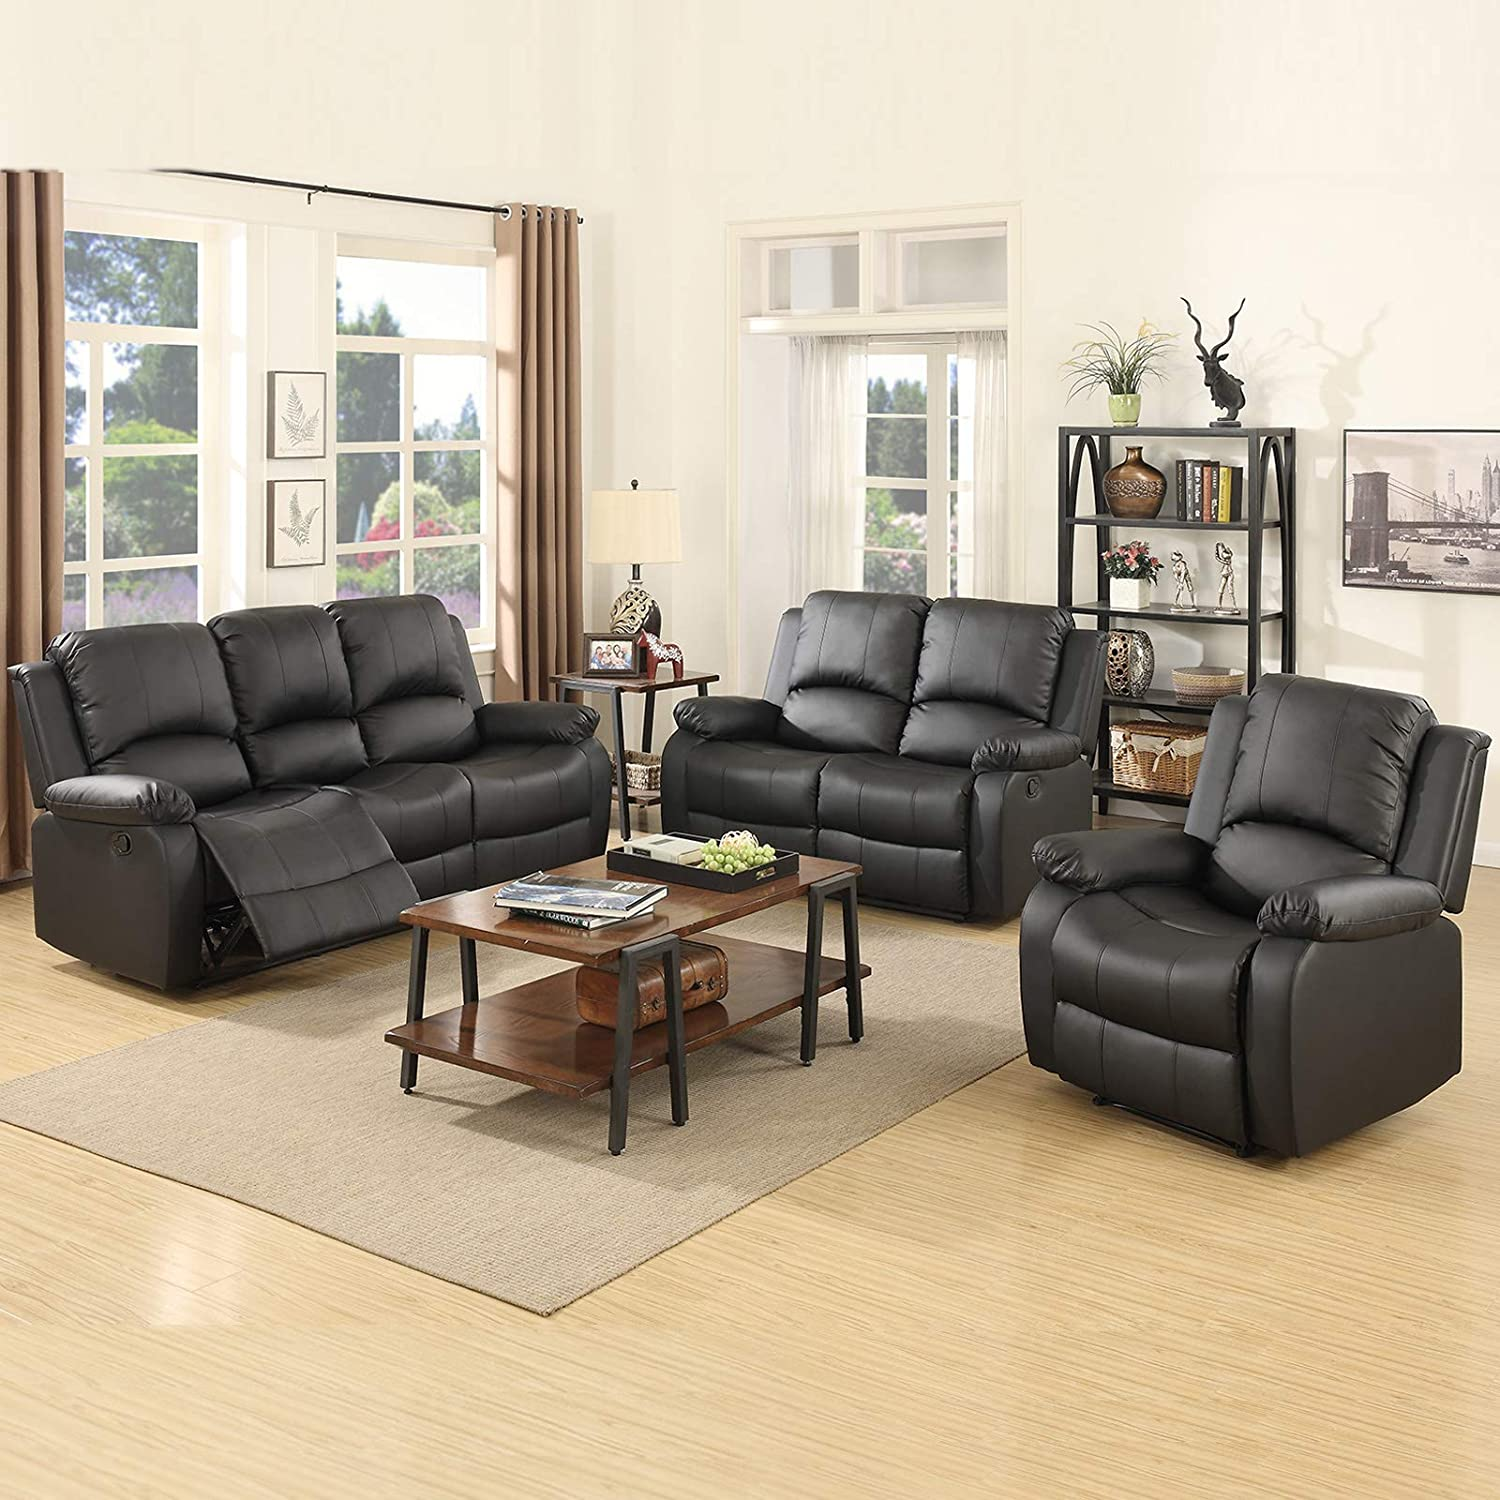 Amazon Com Mecor 3 Piece Sofa Set Bonded Leather Motion Sofa Reclining Sofa Chair Living Room Furniture With 3 Seat Sofa Loveseat And Recliner Chair Black Furniture Decor